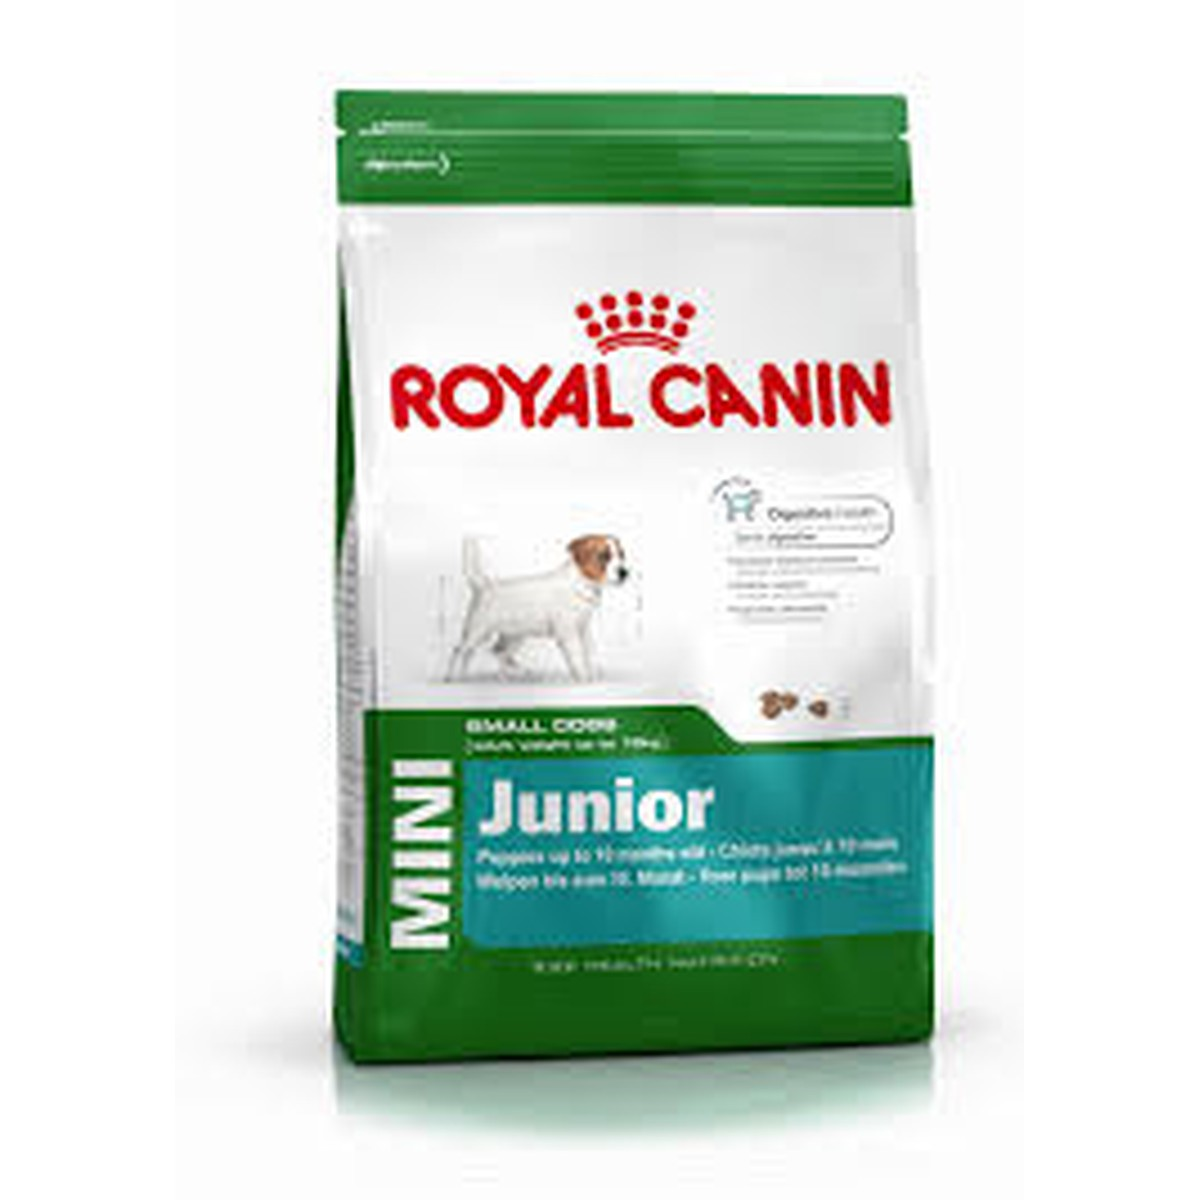 Royal Canin  Mini Puppy 2 kg  2 kg